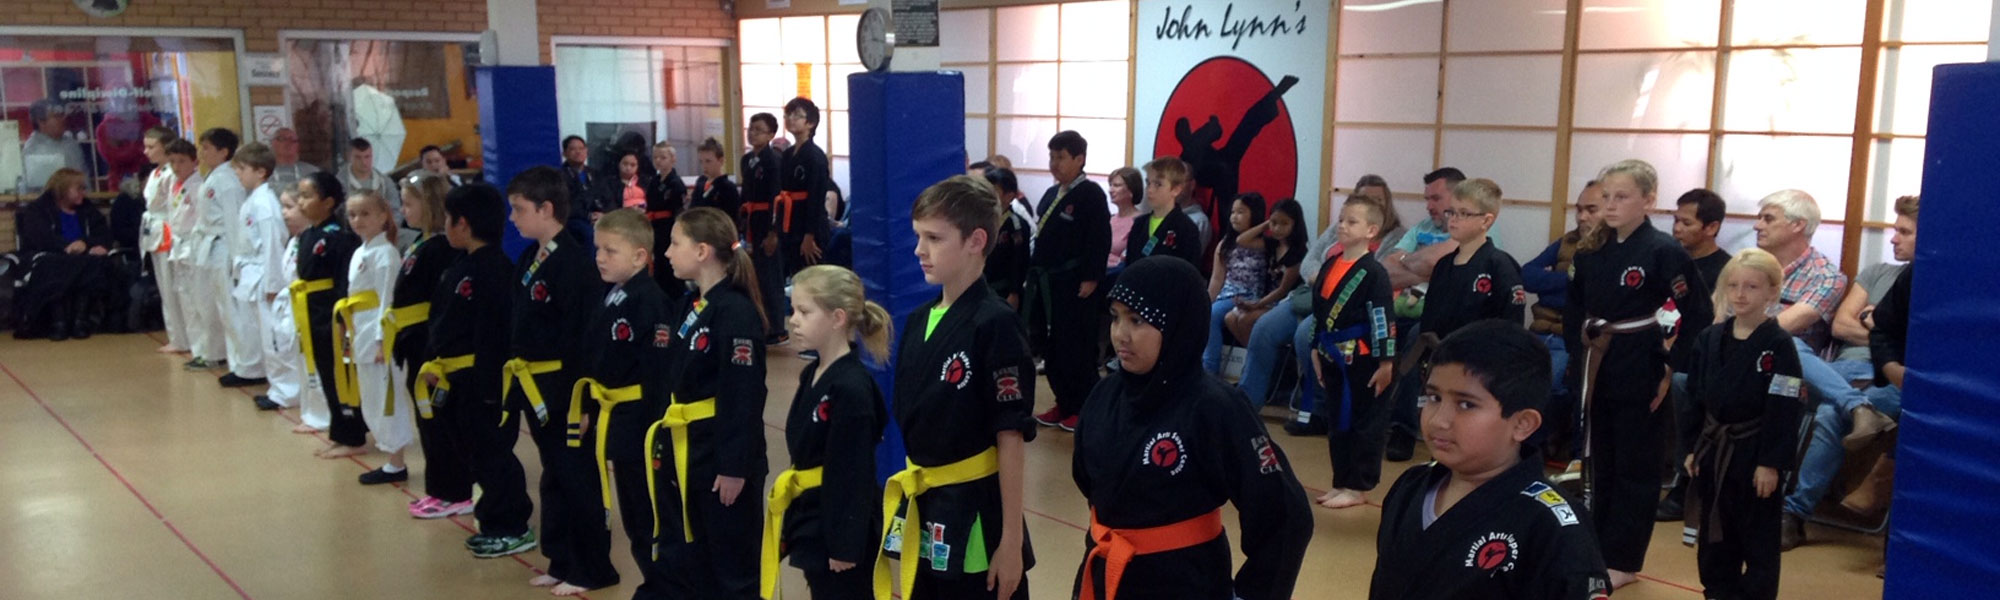 Students standing in John Lynn's Black Belt Academy karate class using merit badges system